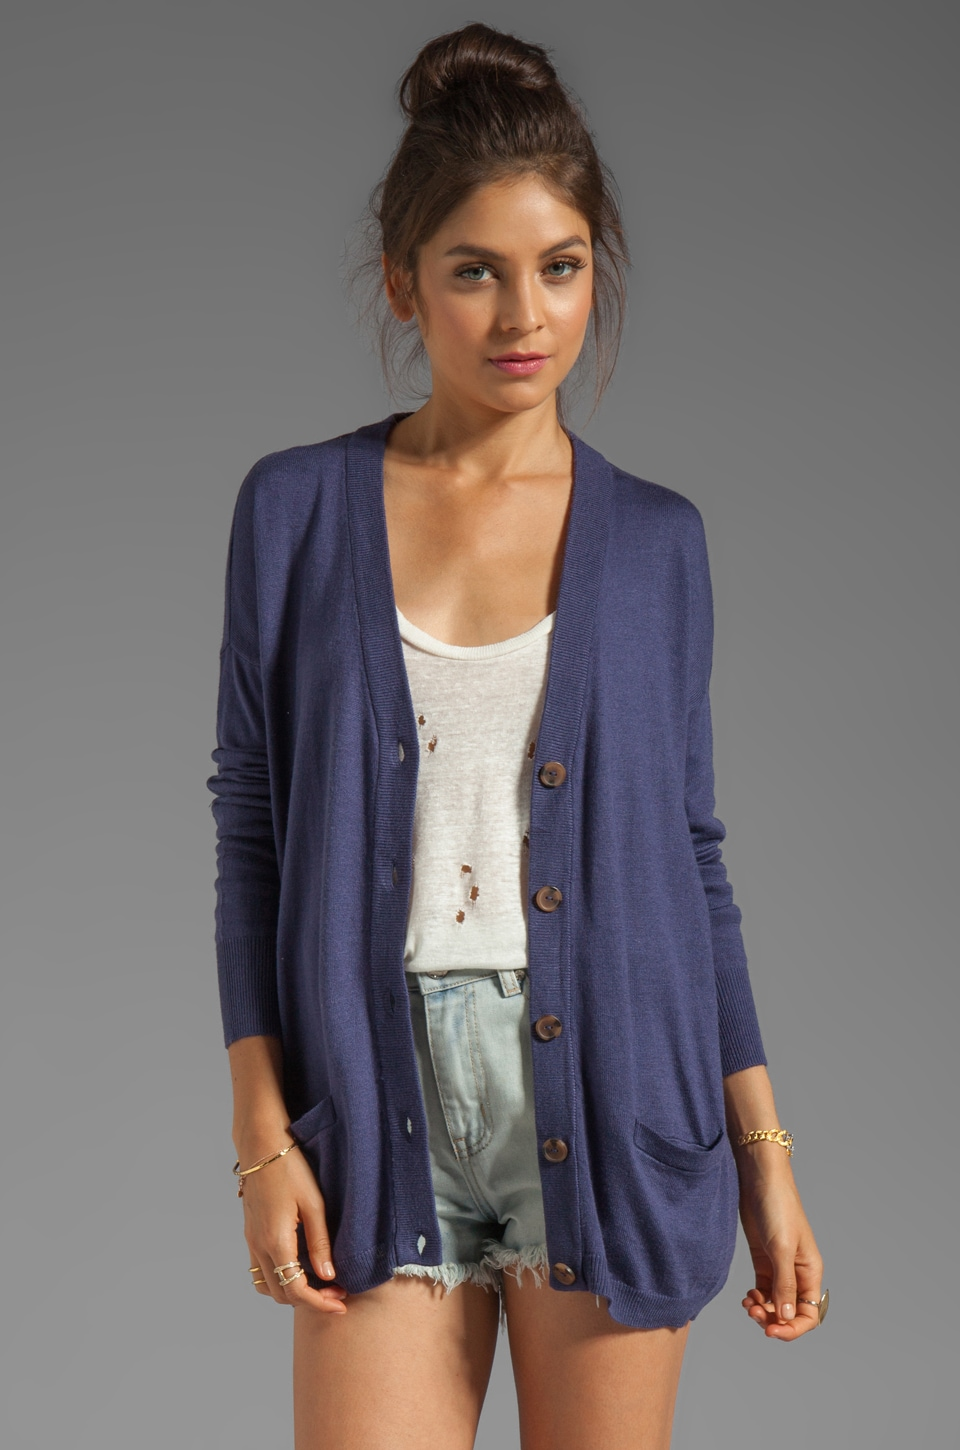 RVCA Shoals V Neck Cardigan with Elbow Patches in Navy